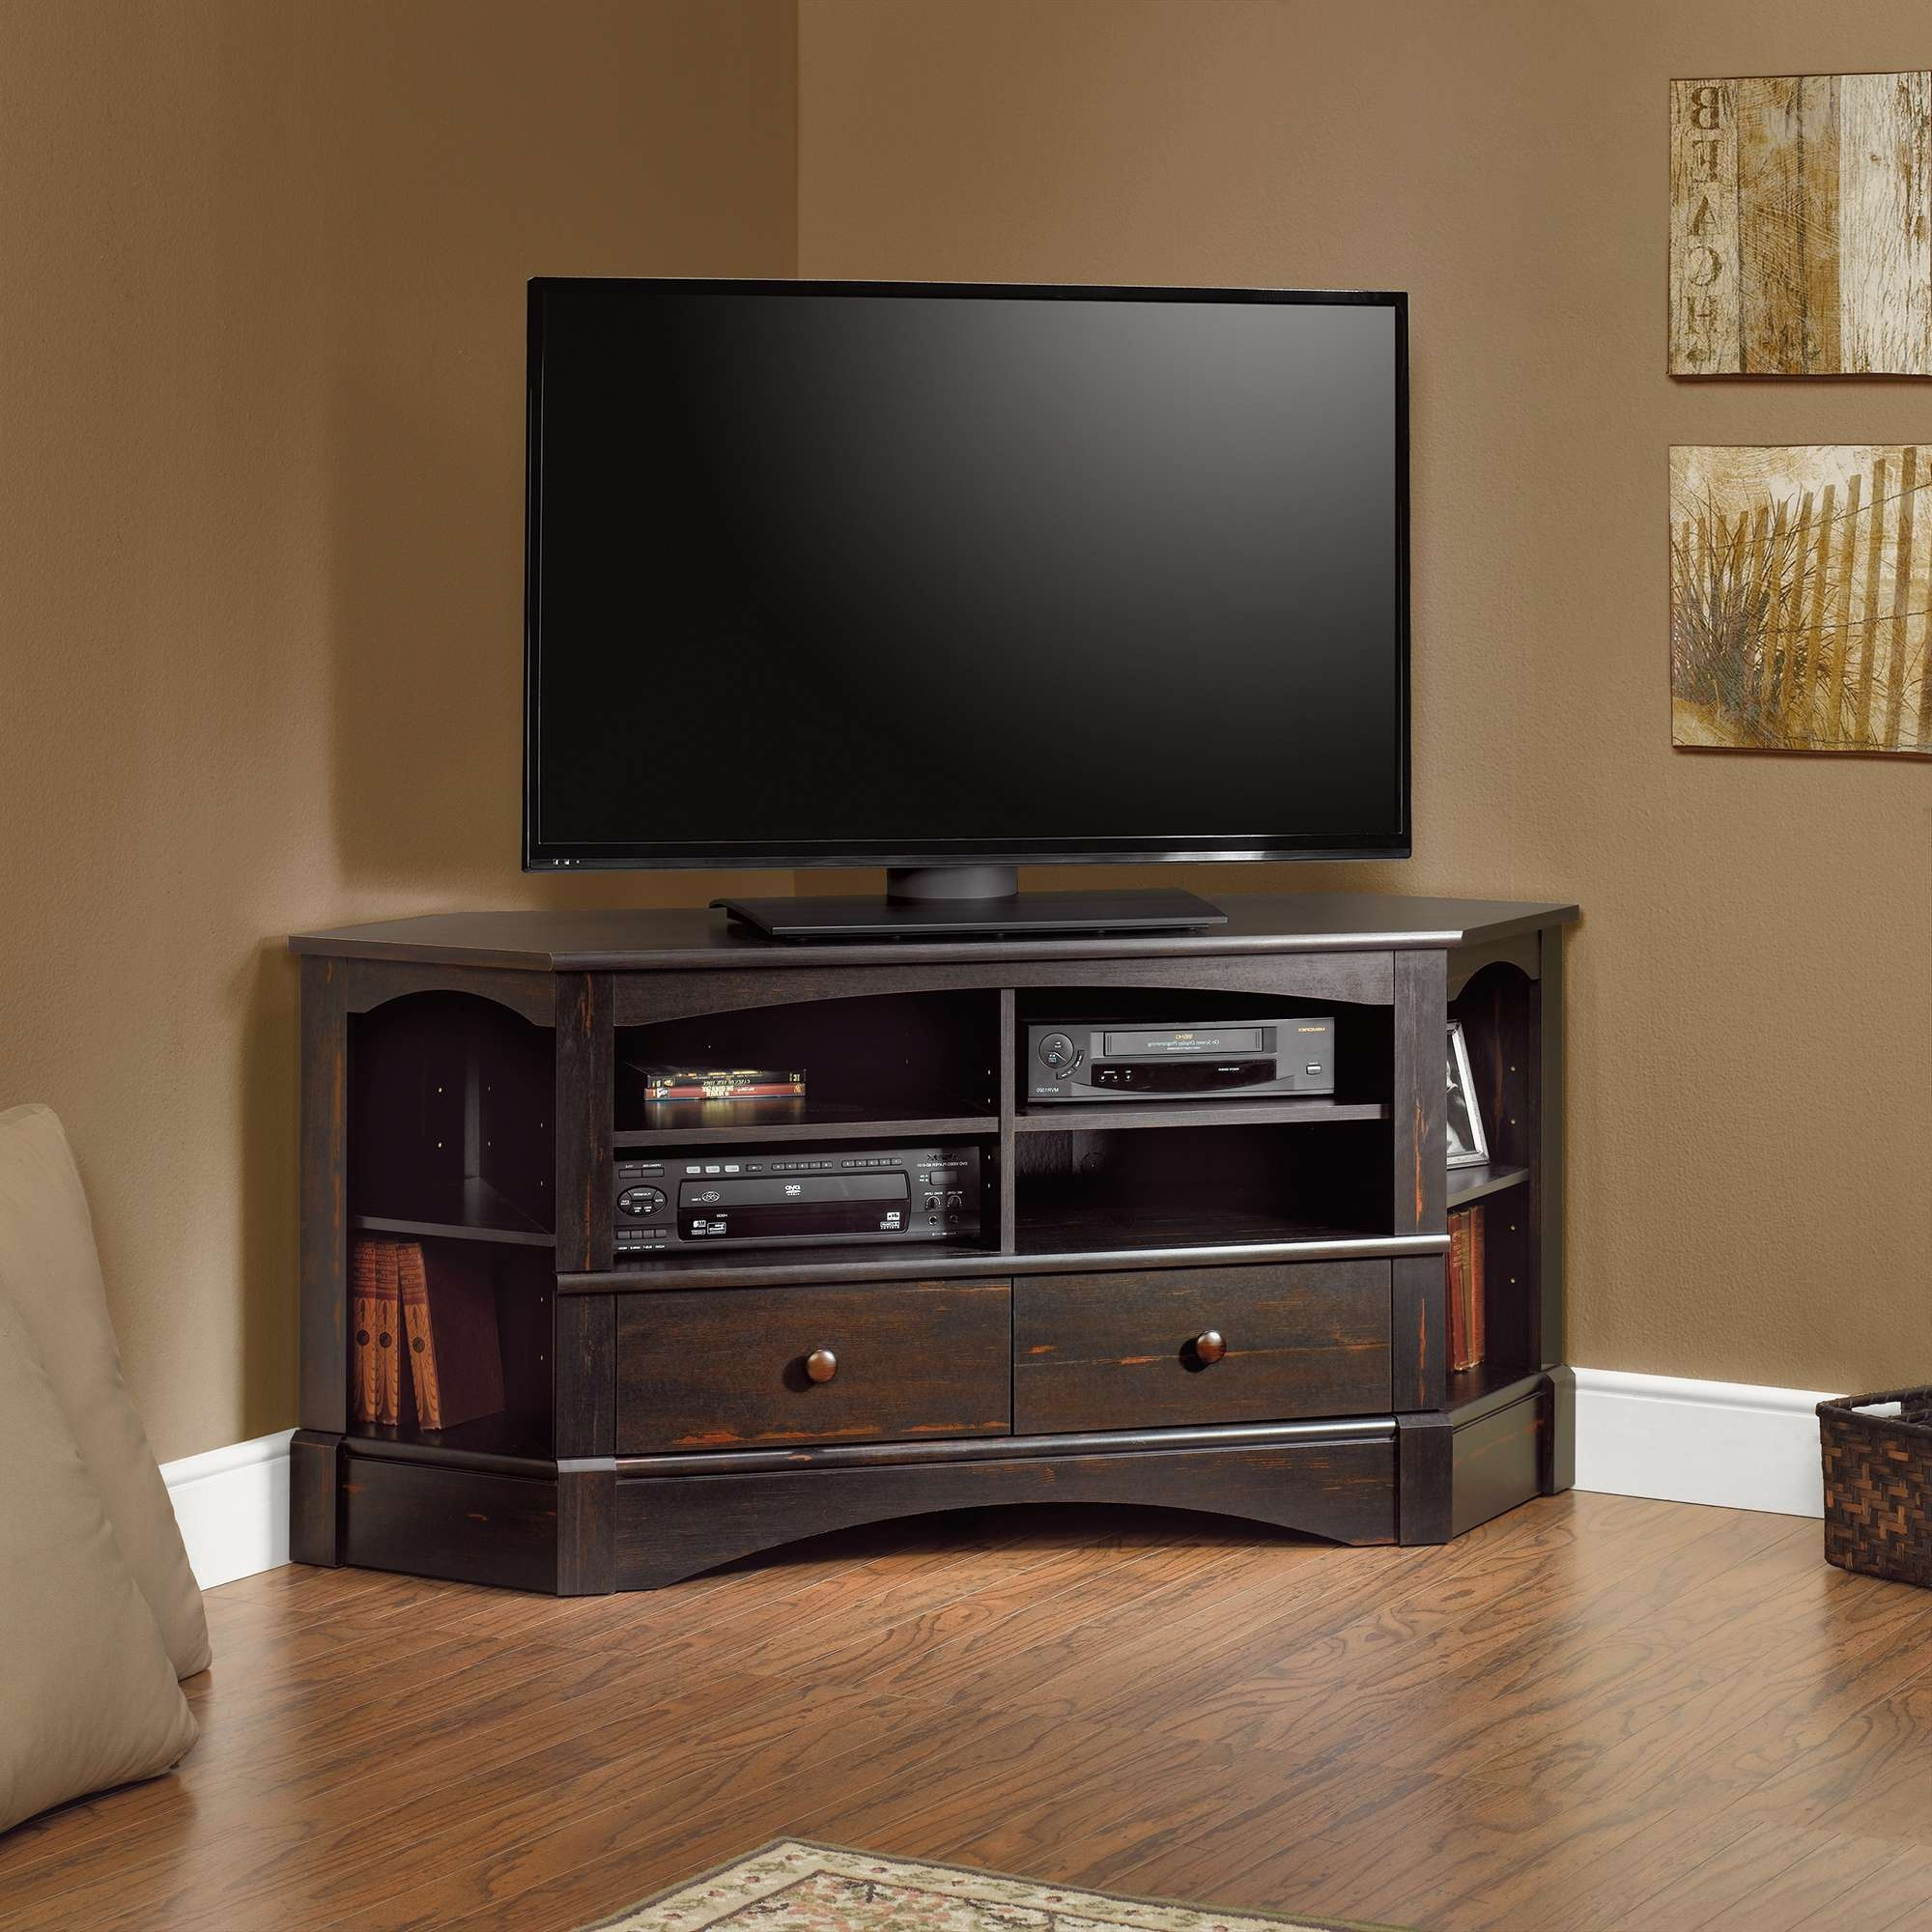 Harbor View | Corner Entertainment Credenza | 402902 | Sauder Pertaining To Corner Tv Cabinets For Flat Screens With Doors (View 12 of 20)